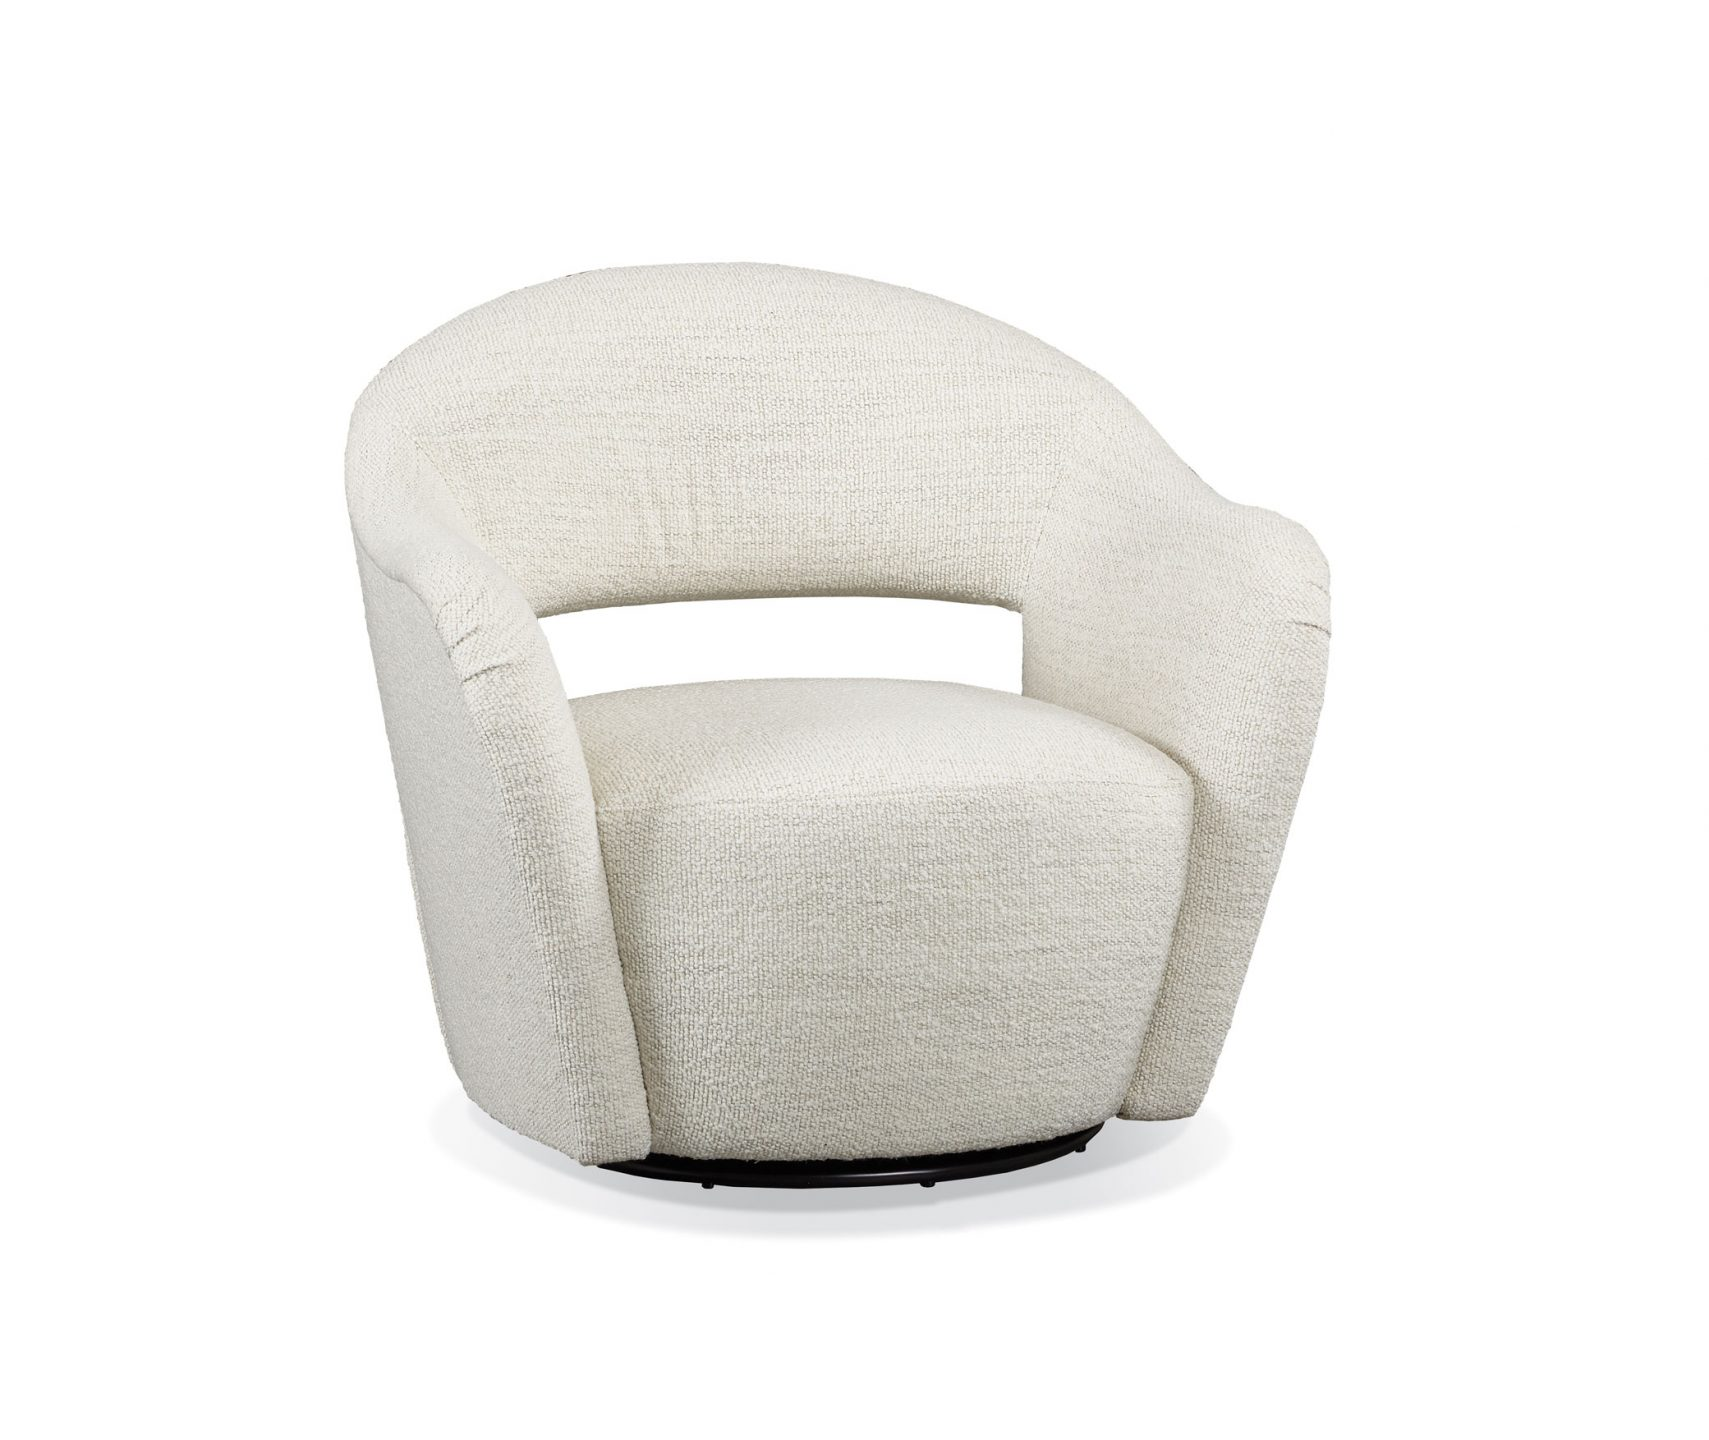 Sherrill-Furniture-Brands_Suzette-Swivel-Chair_int_products